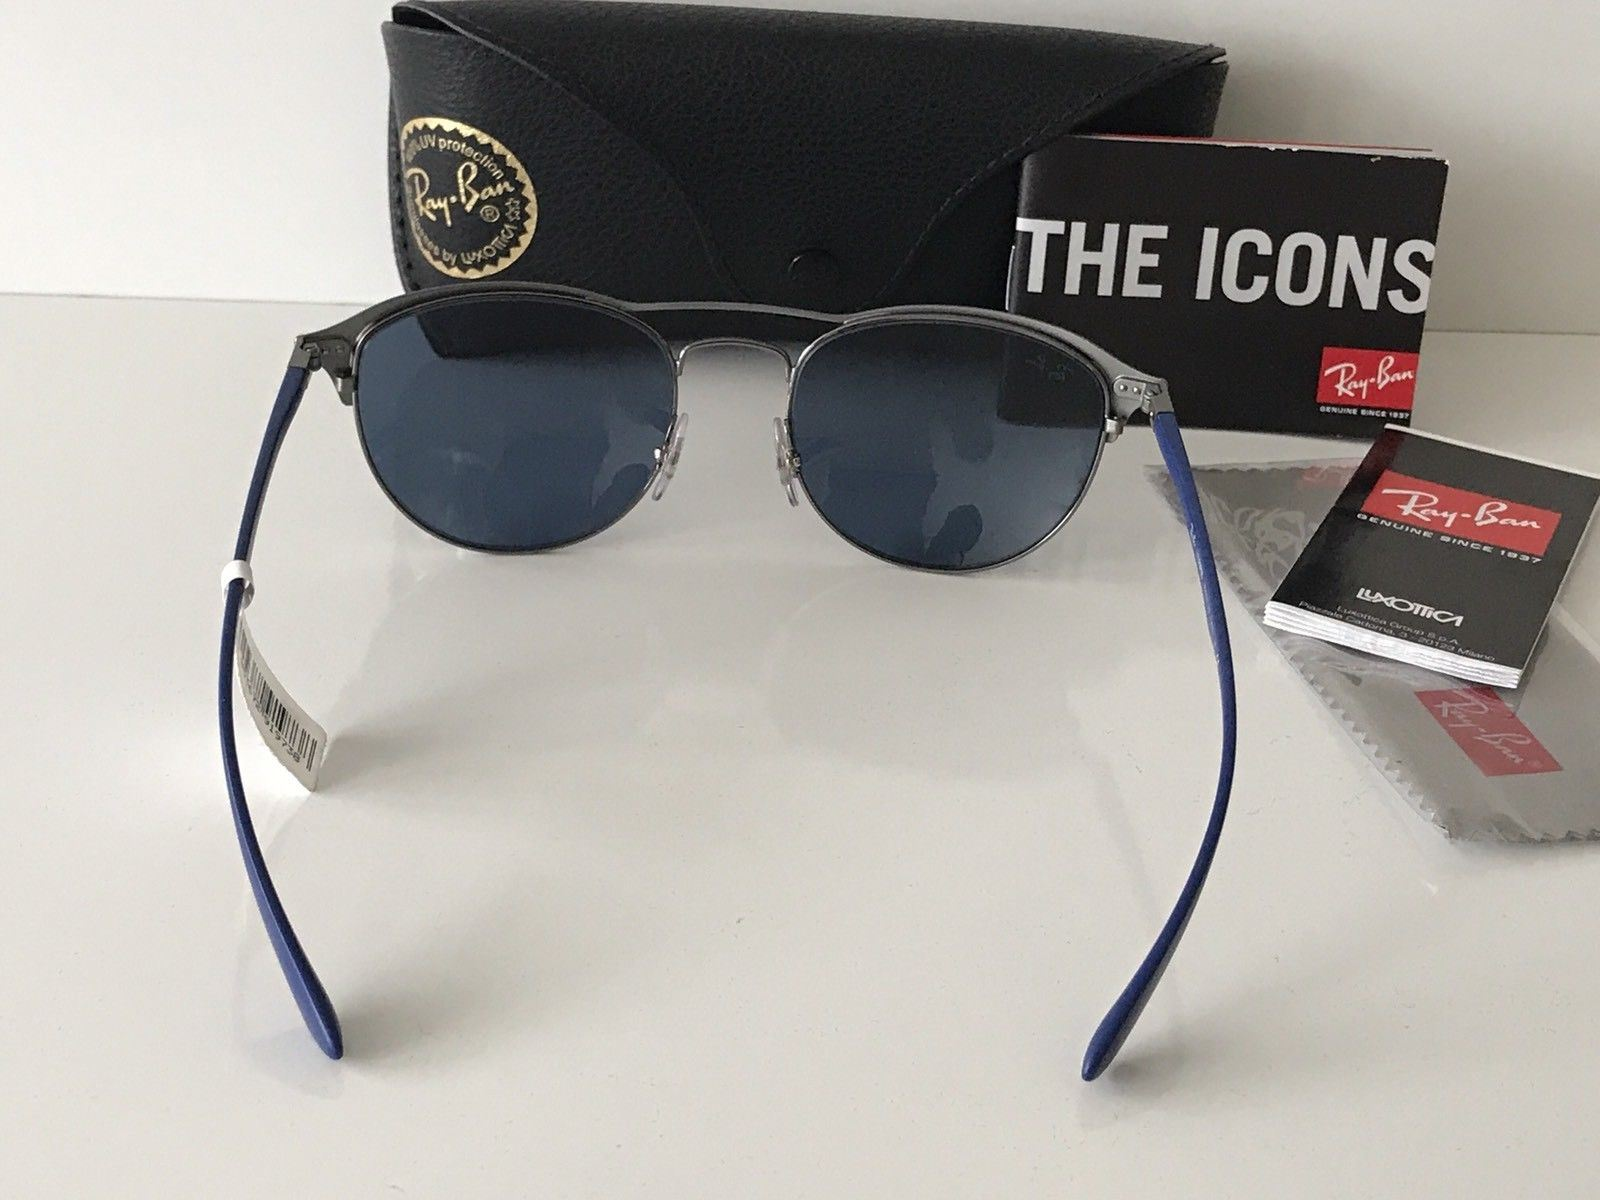 6118202edc1 NWT Ray Ban Sunglasses RB 3596 9005 80 Gunmetal on top Matte Blue Frame  Italy